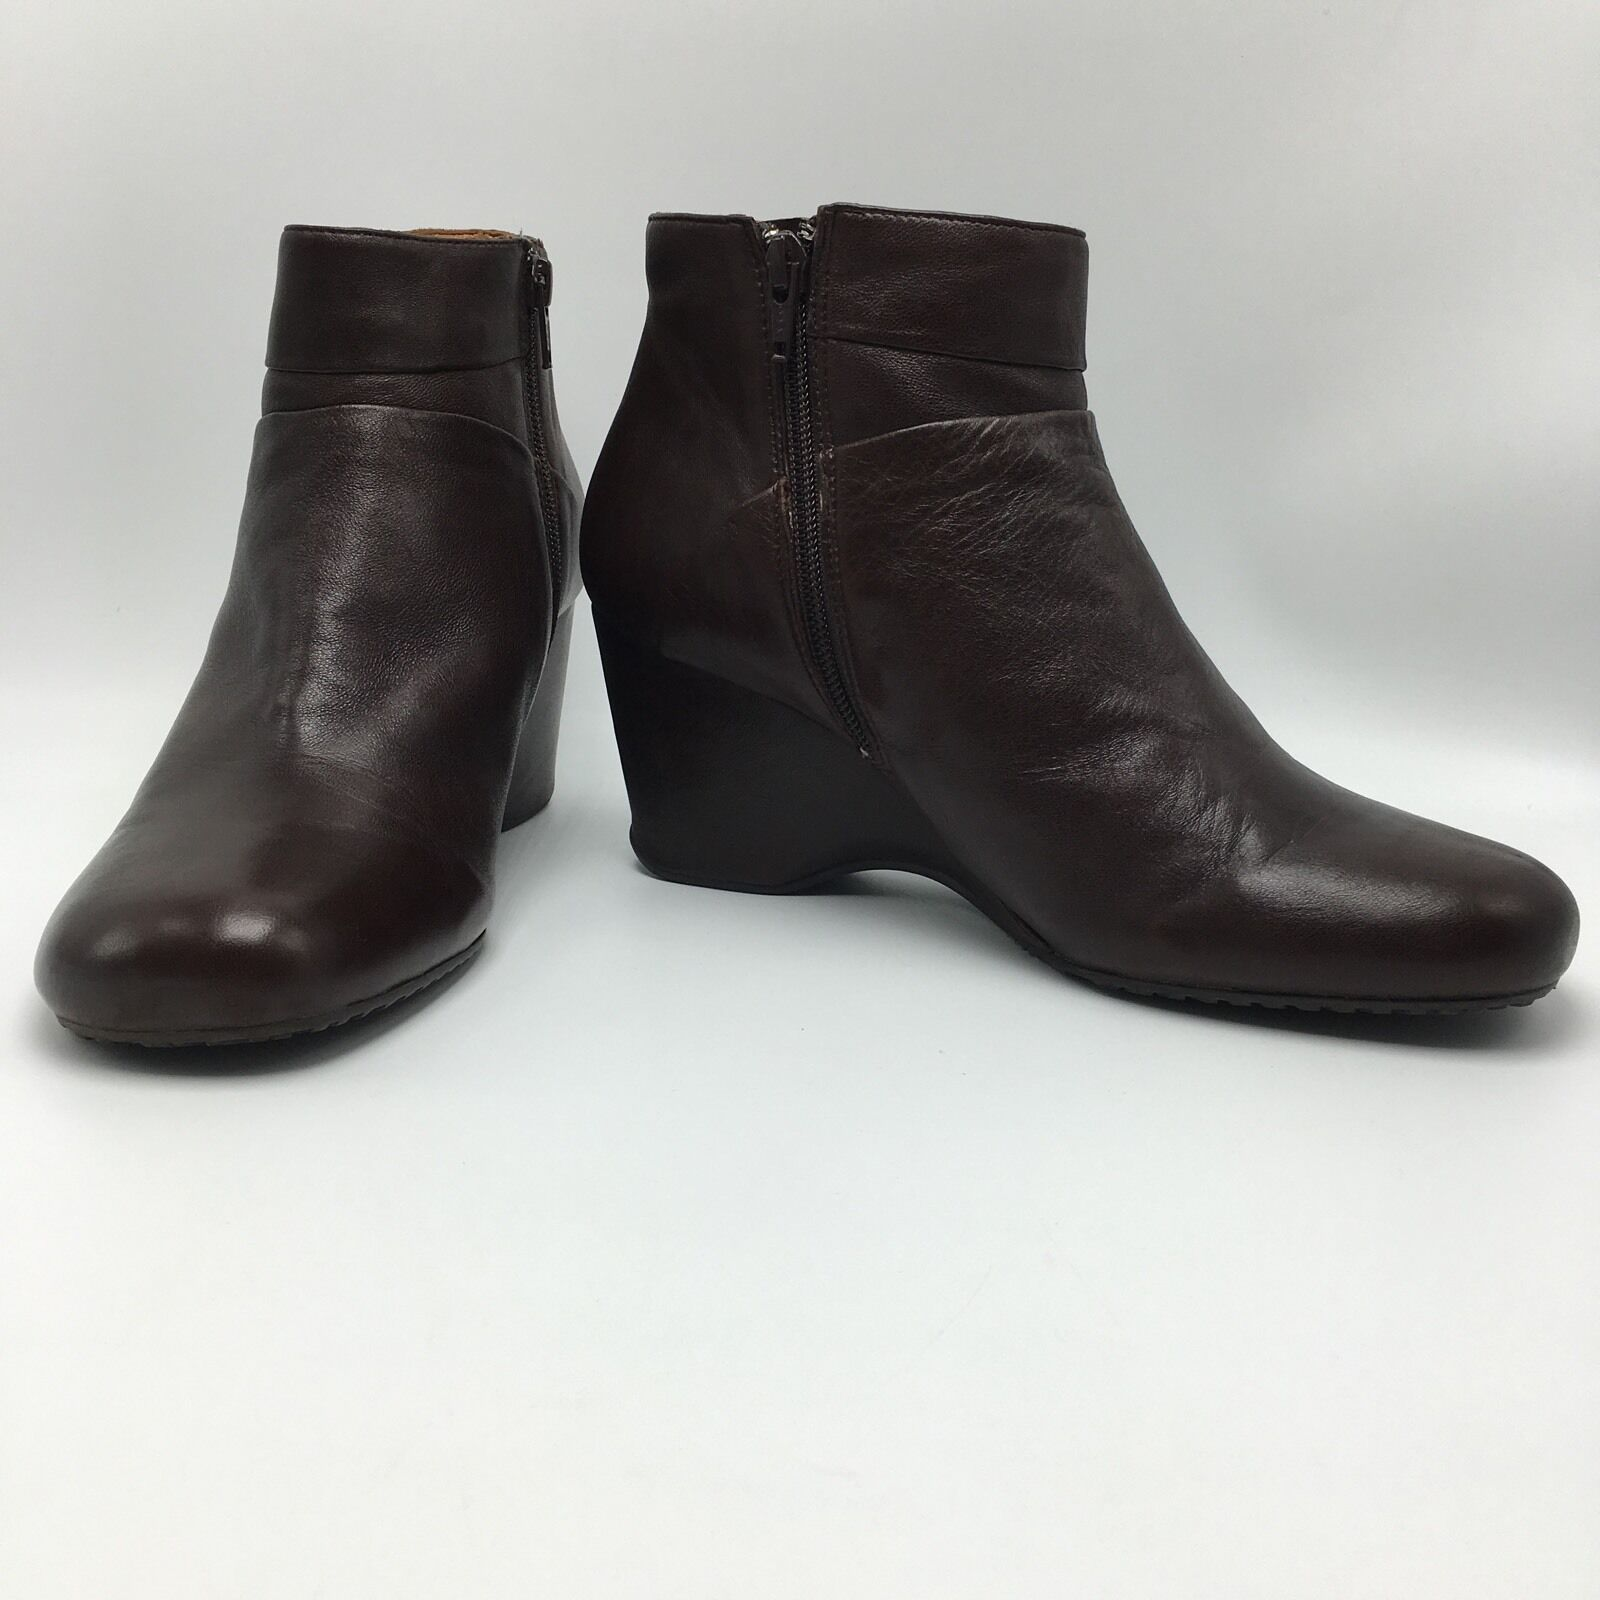 Gentle Souls Rider Ankle Boot Brown Glove Leather Side Zip Wedge Womens Size 9